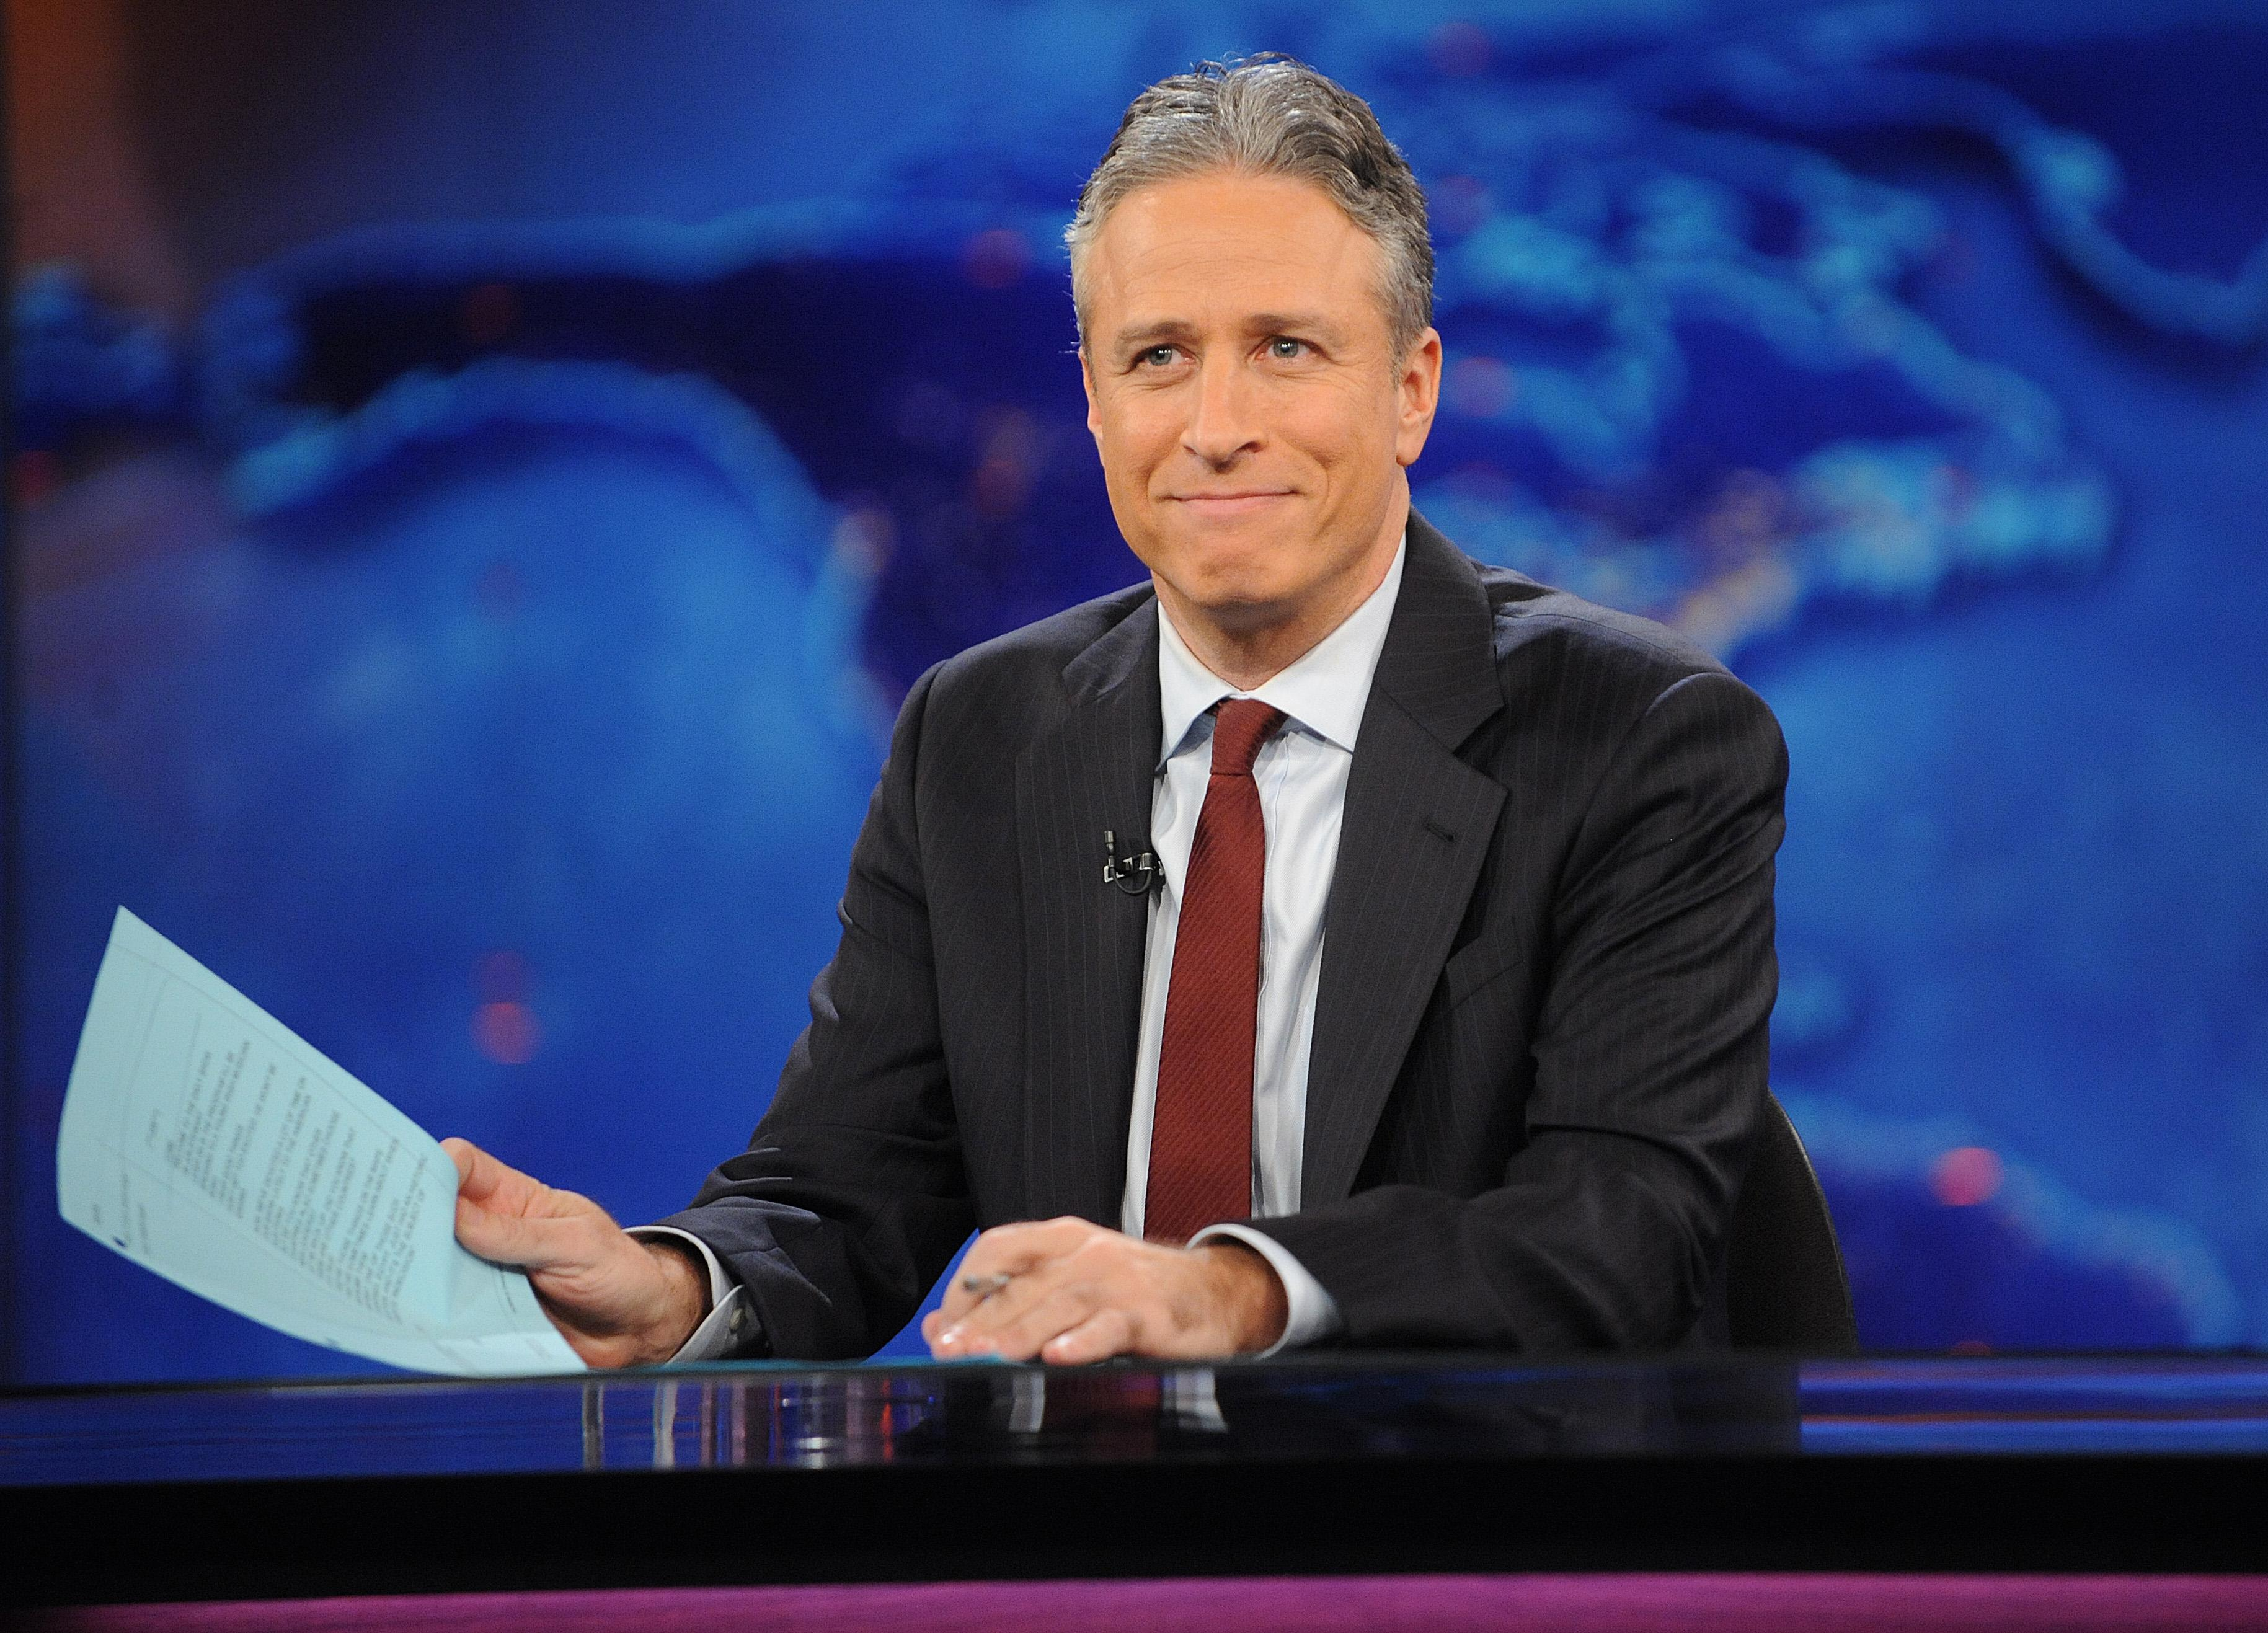 How Jon Stewart's resignation re-ignited the 'Lean In' debate